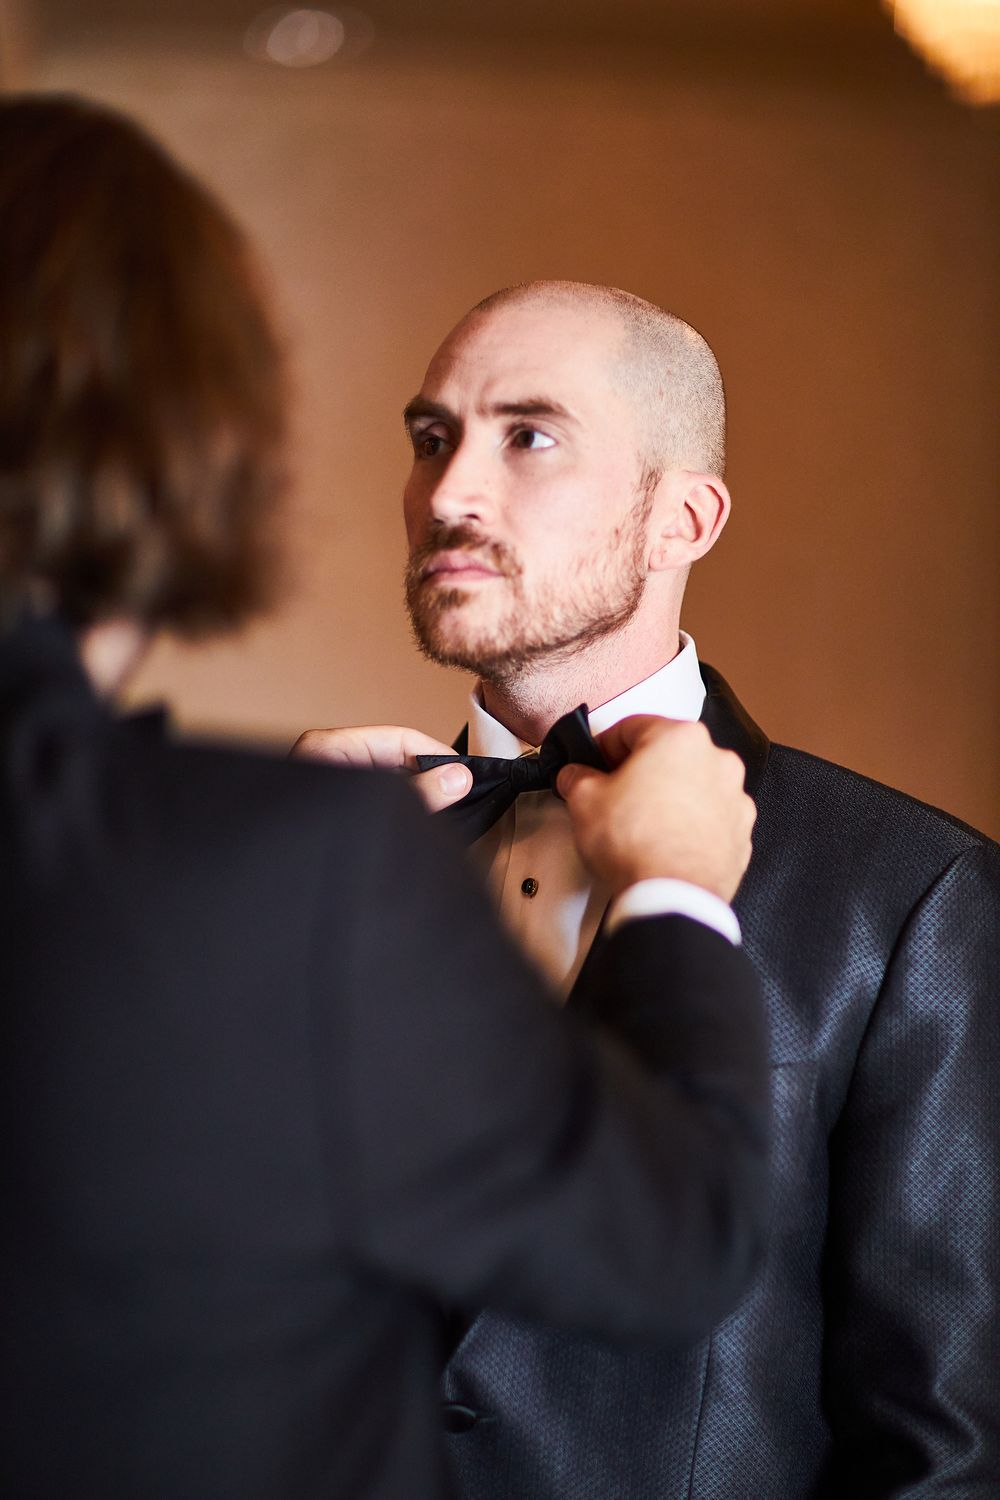 A groomsman adjusting Joe's bowtie as they prepare for the ceremony in the Seelbach Hotel in Louisville, KY.